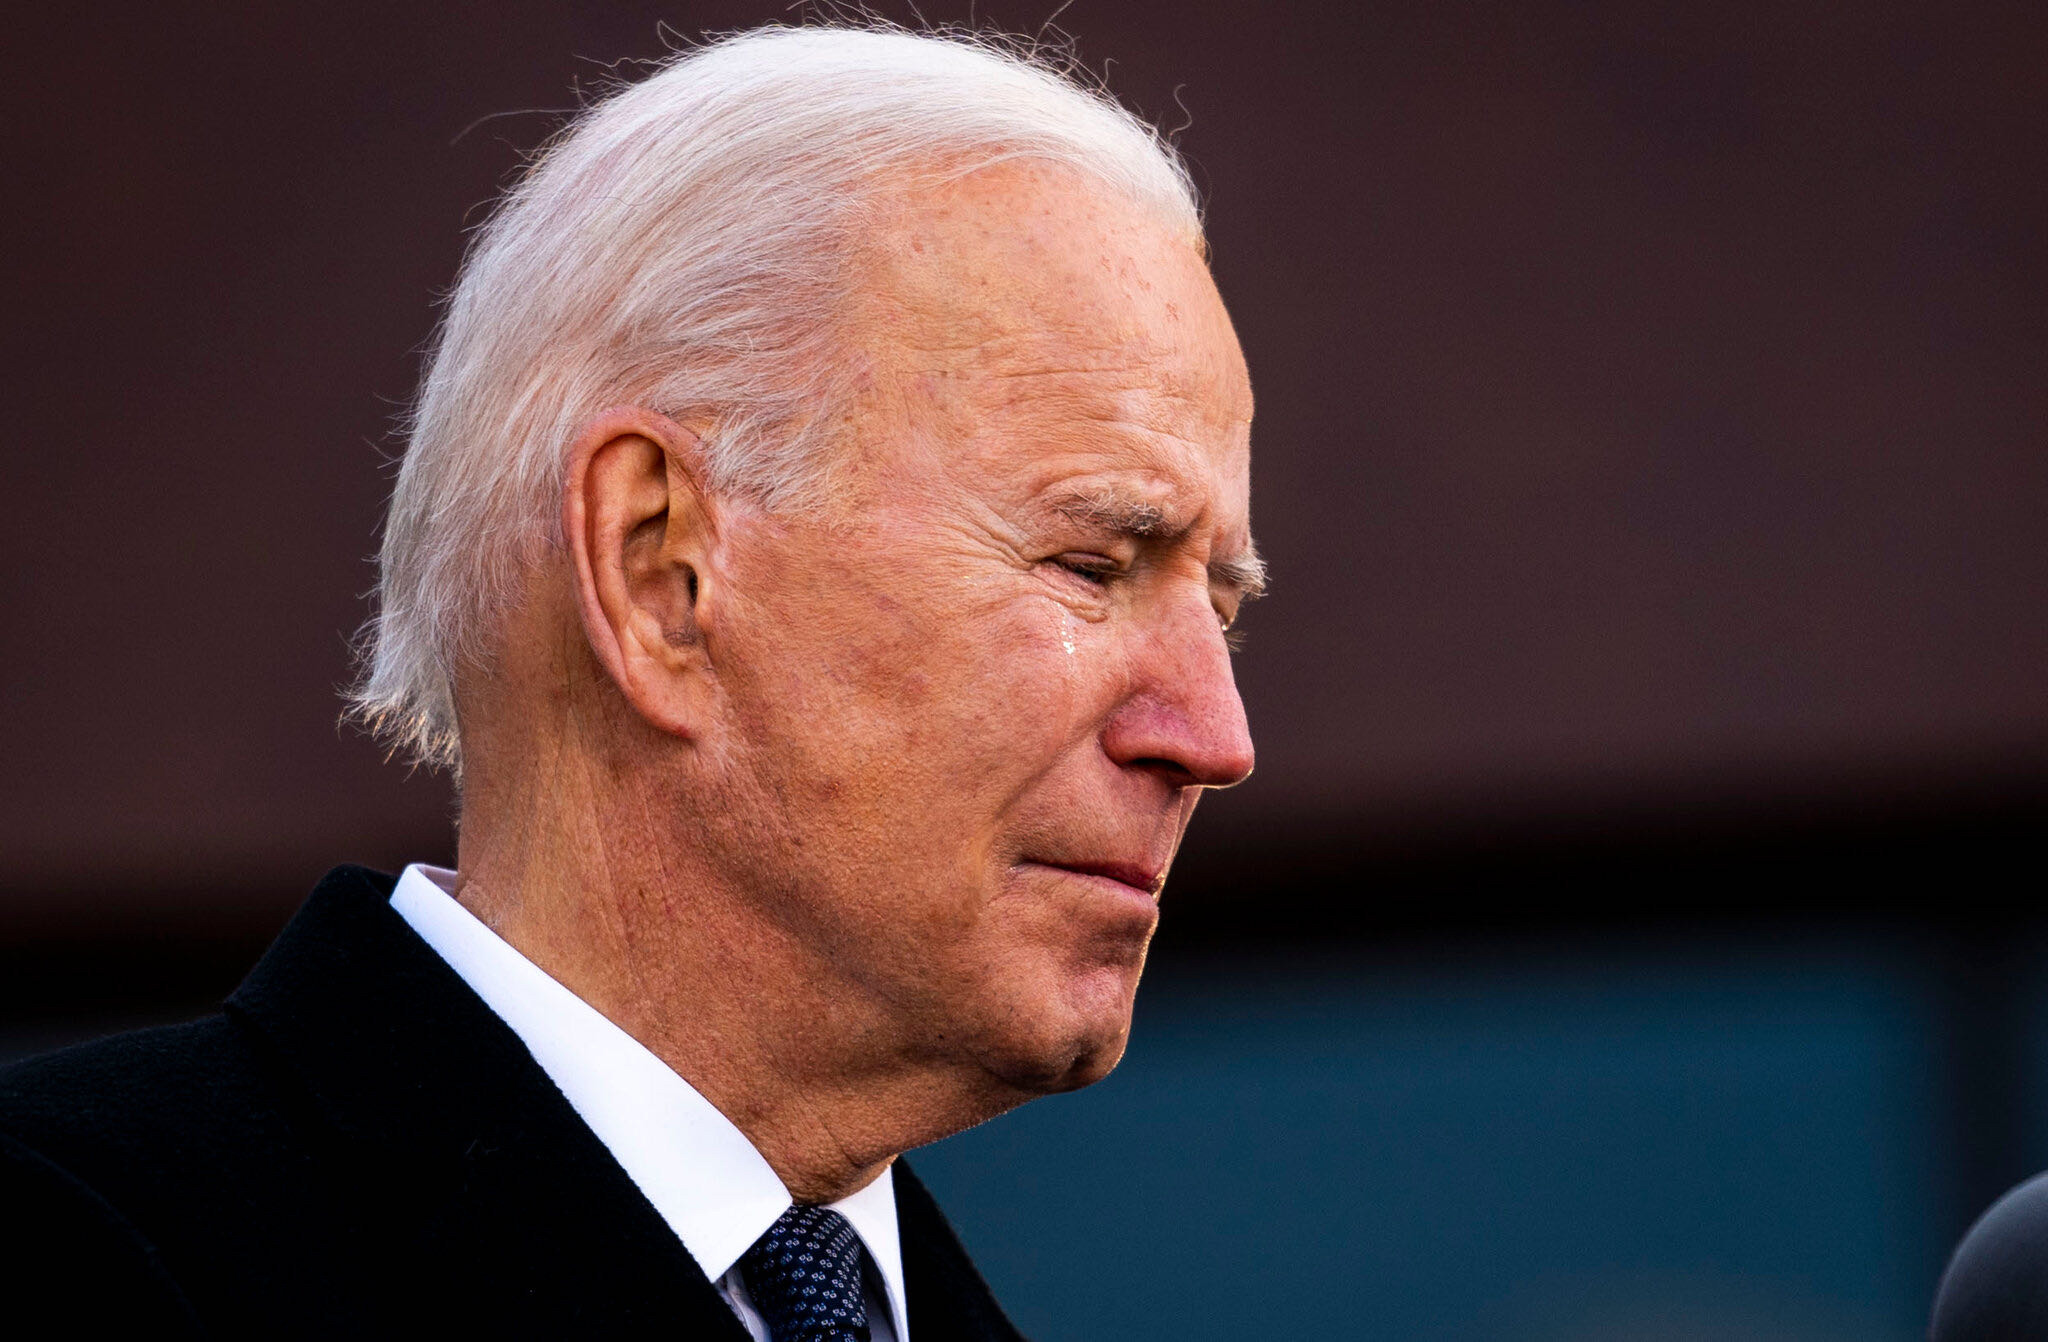 U.S. court says Biden administration can likely limit immigration arrests